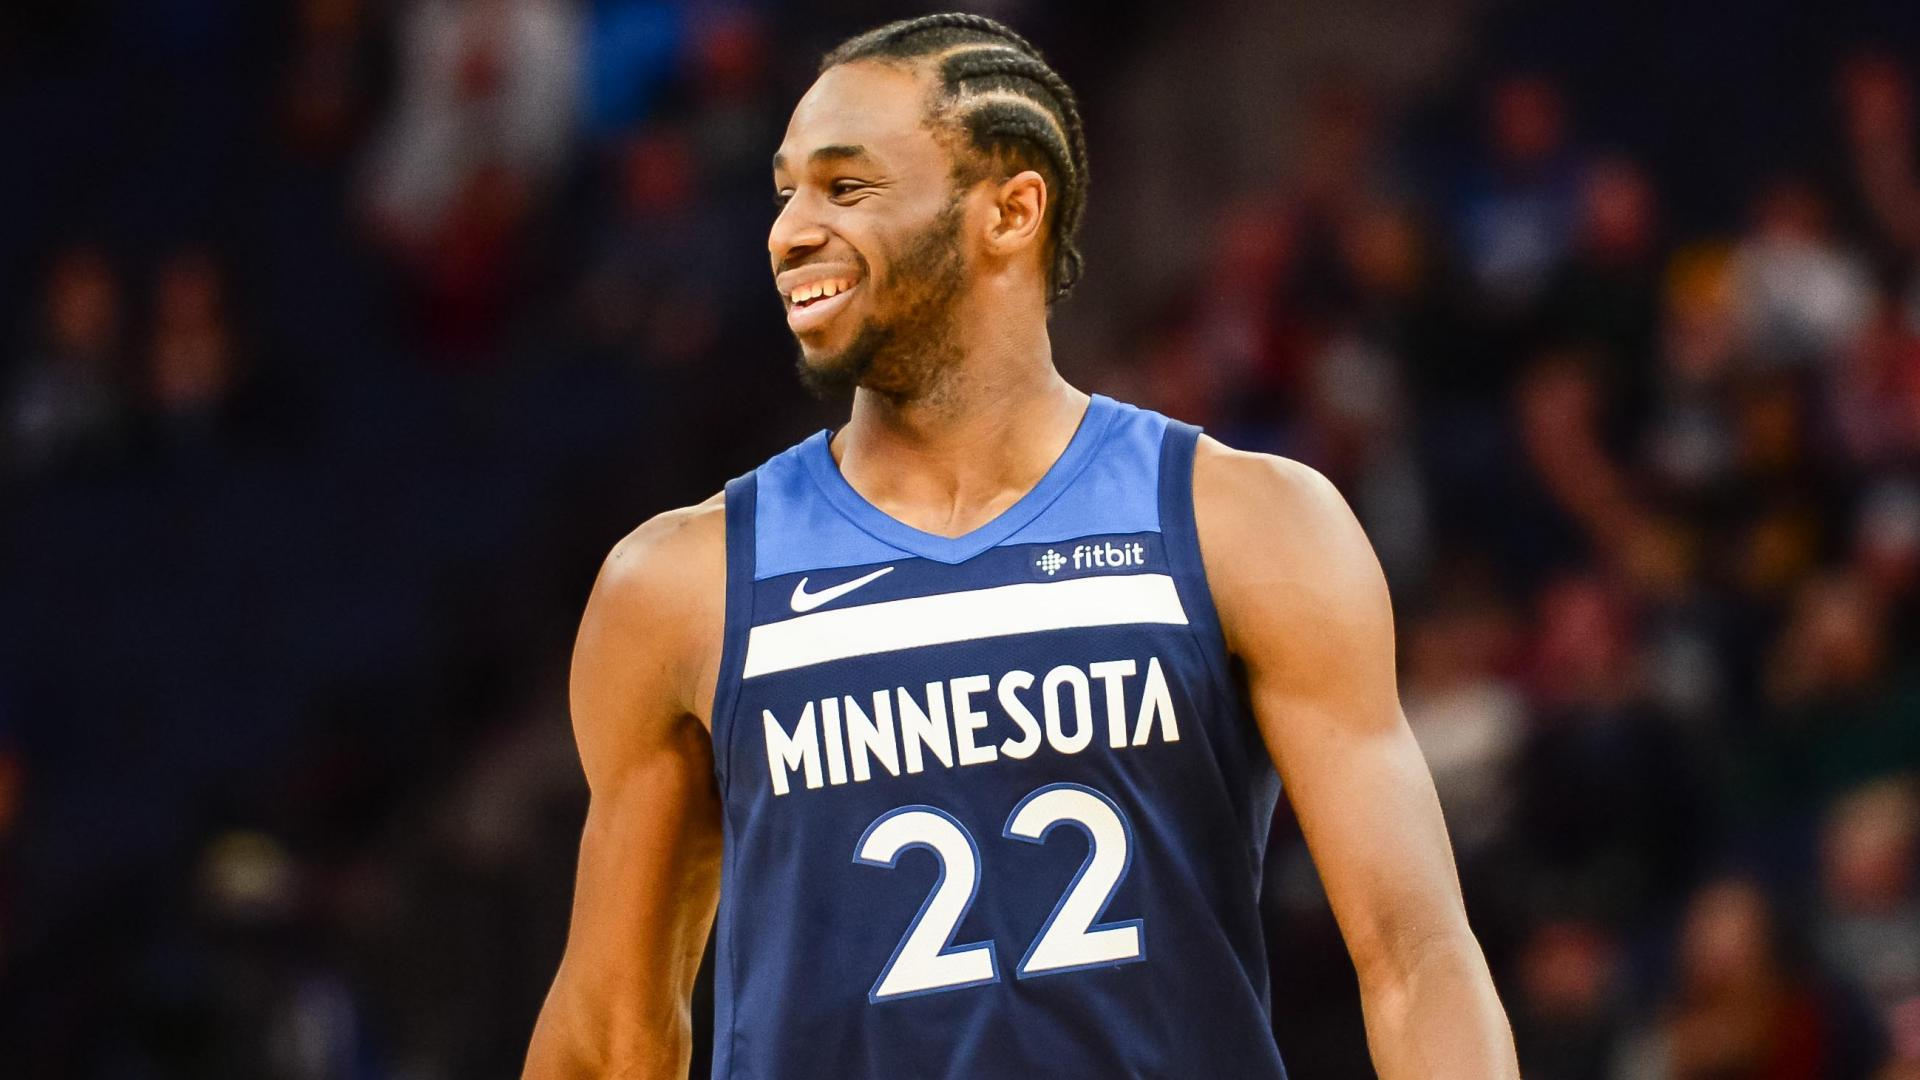 Minnesota Timberwolves out to fuel Andrew Wiggins' rise to stardom | NBA.com